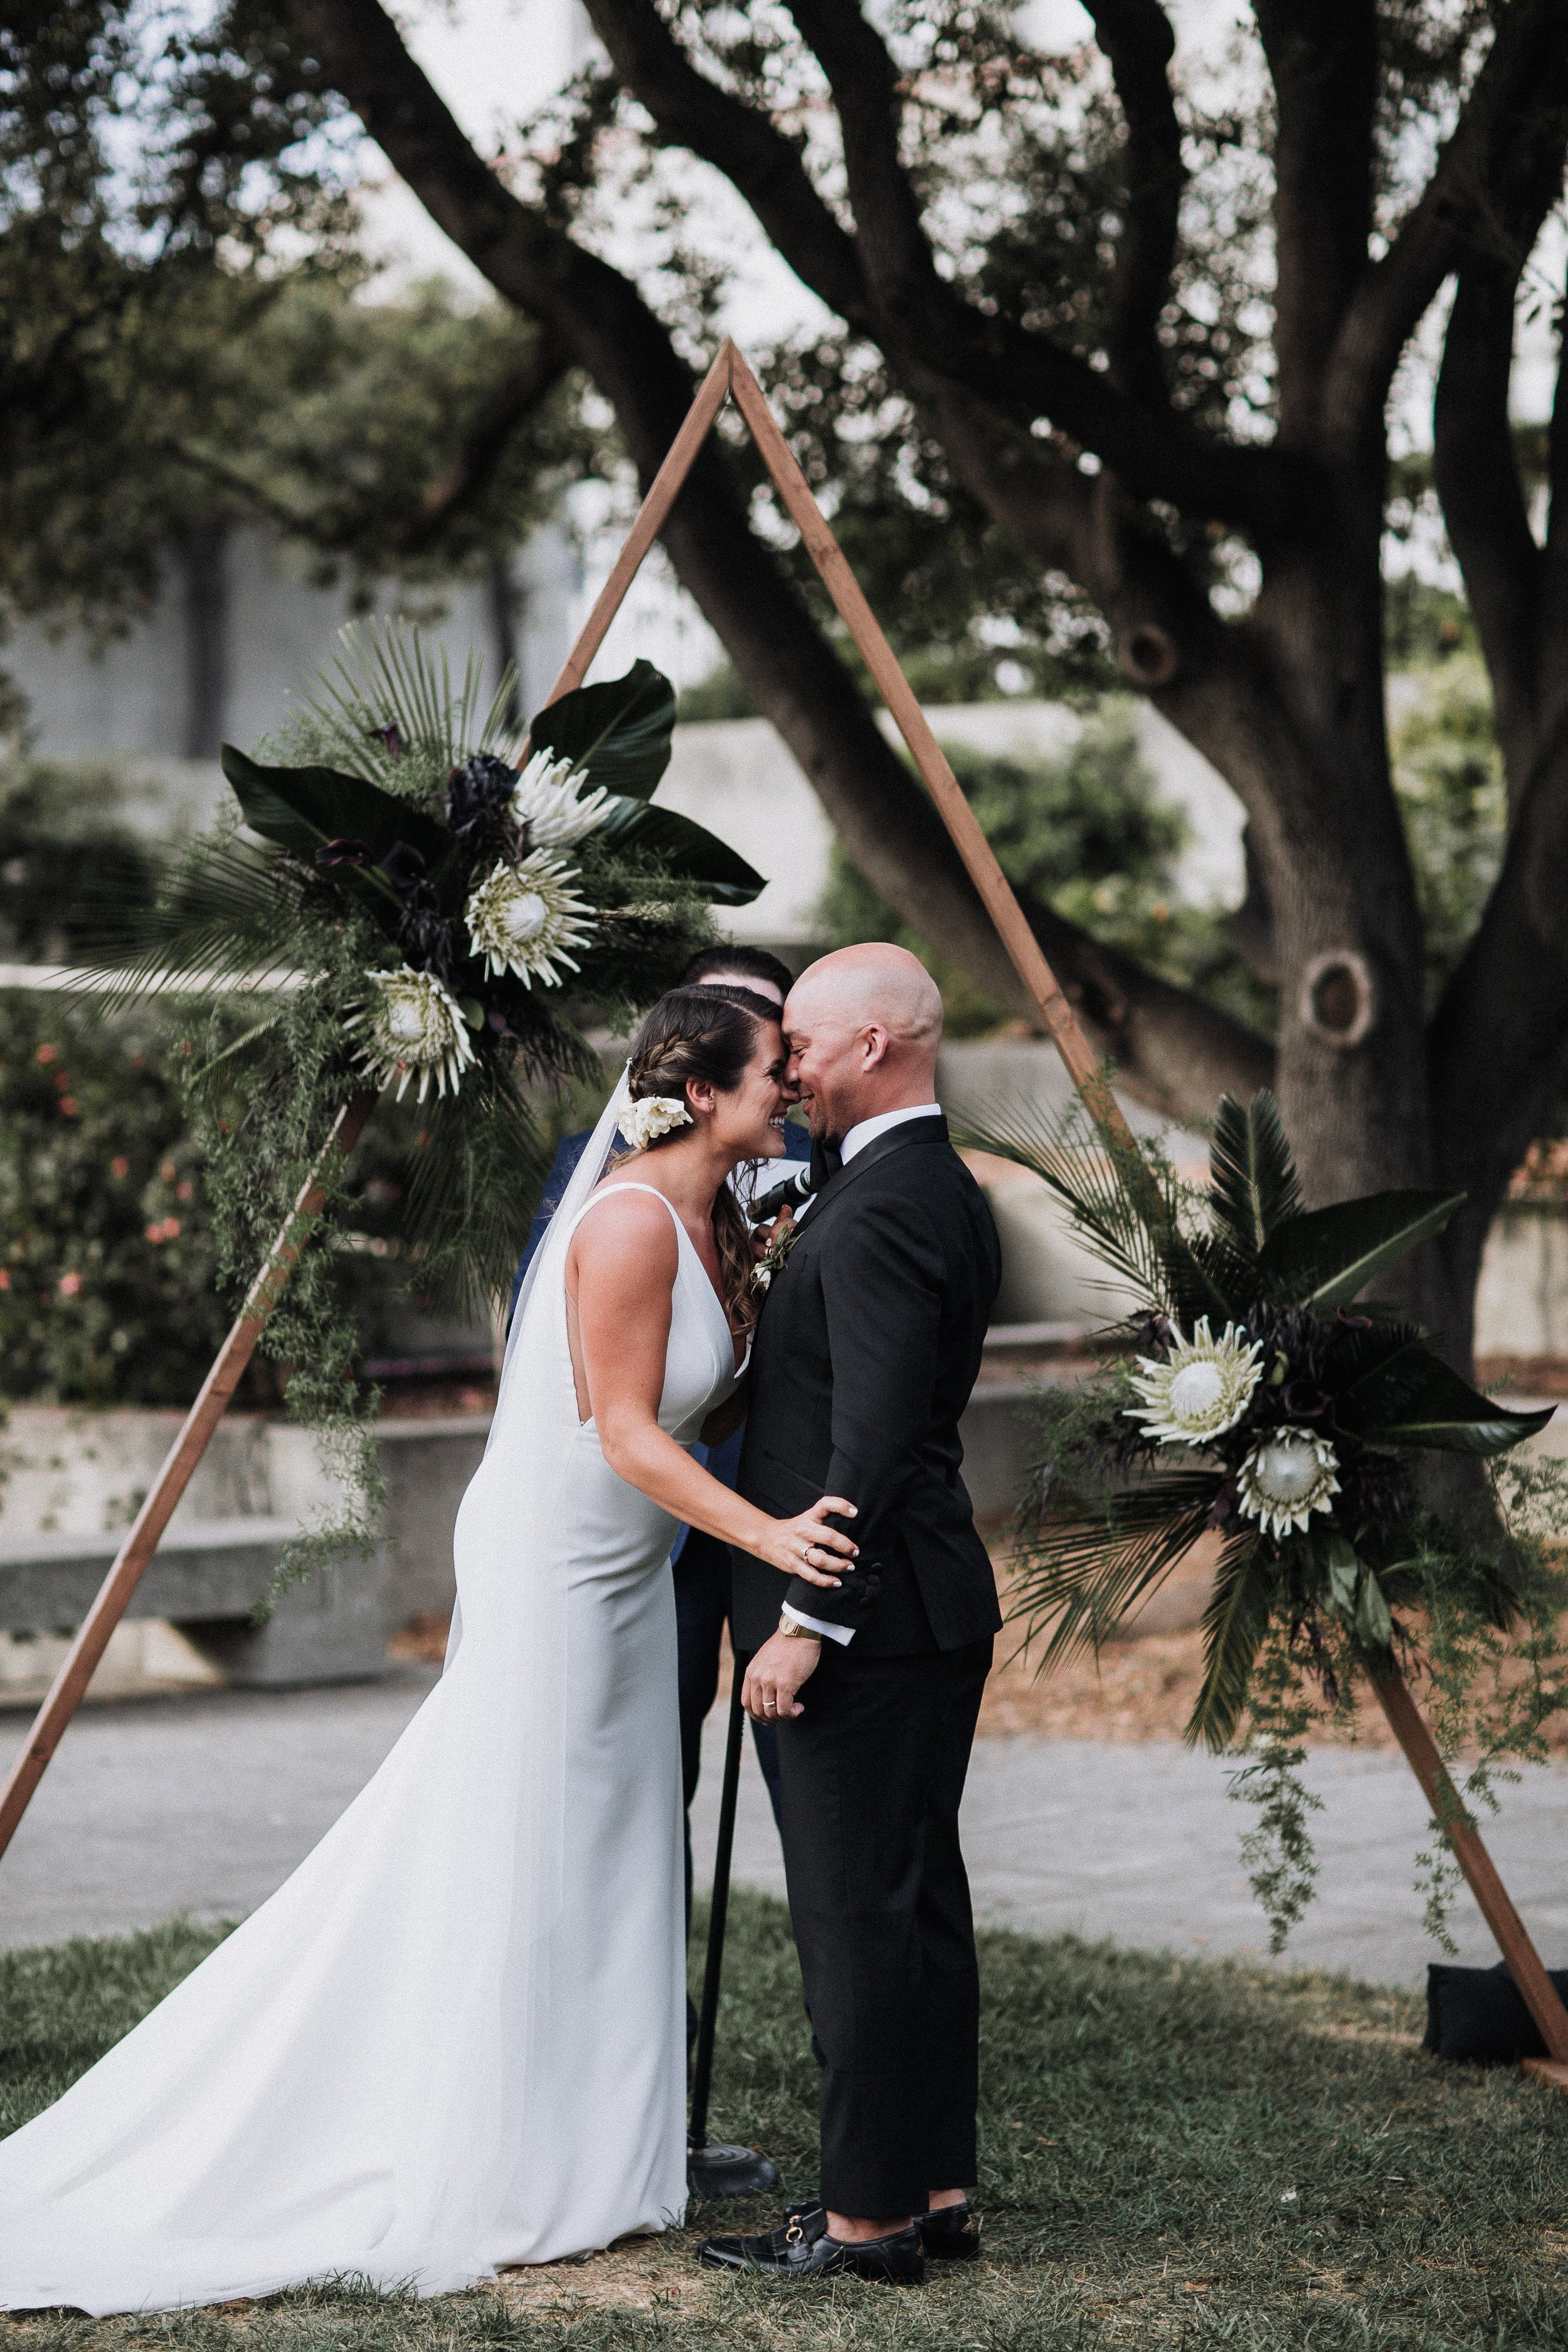 Just Married So Happy Ceremony After Kiss Oakland Museum of California Wedding Katie Laines design and Coordination